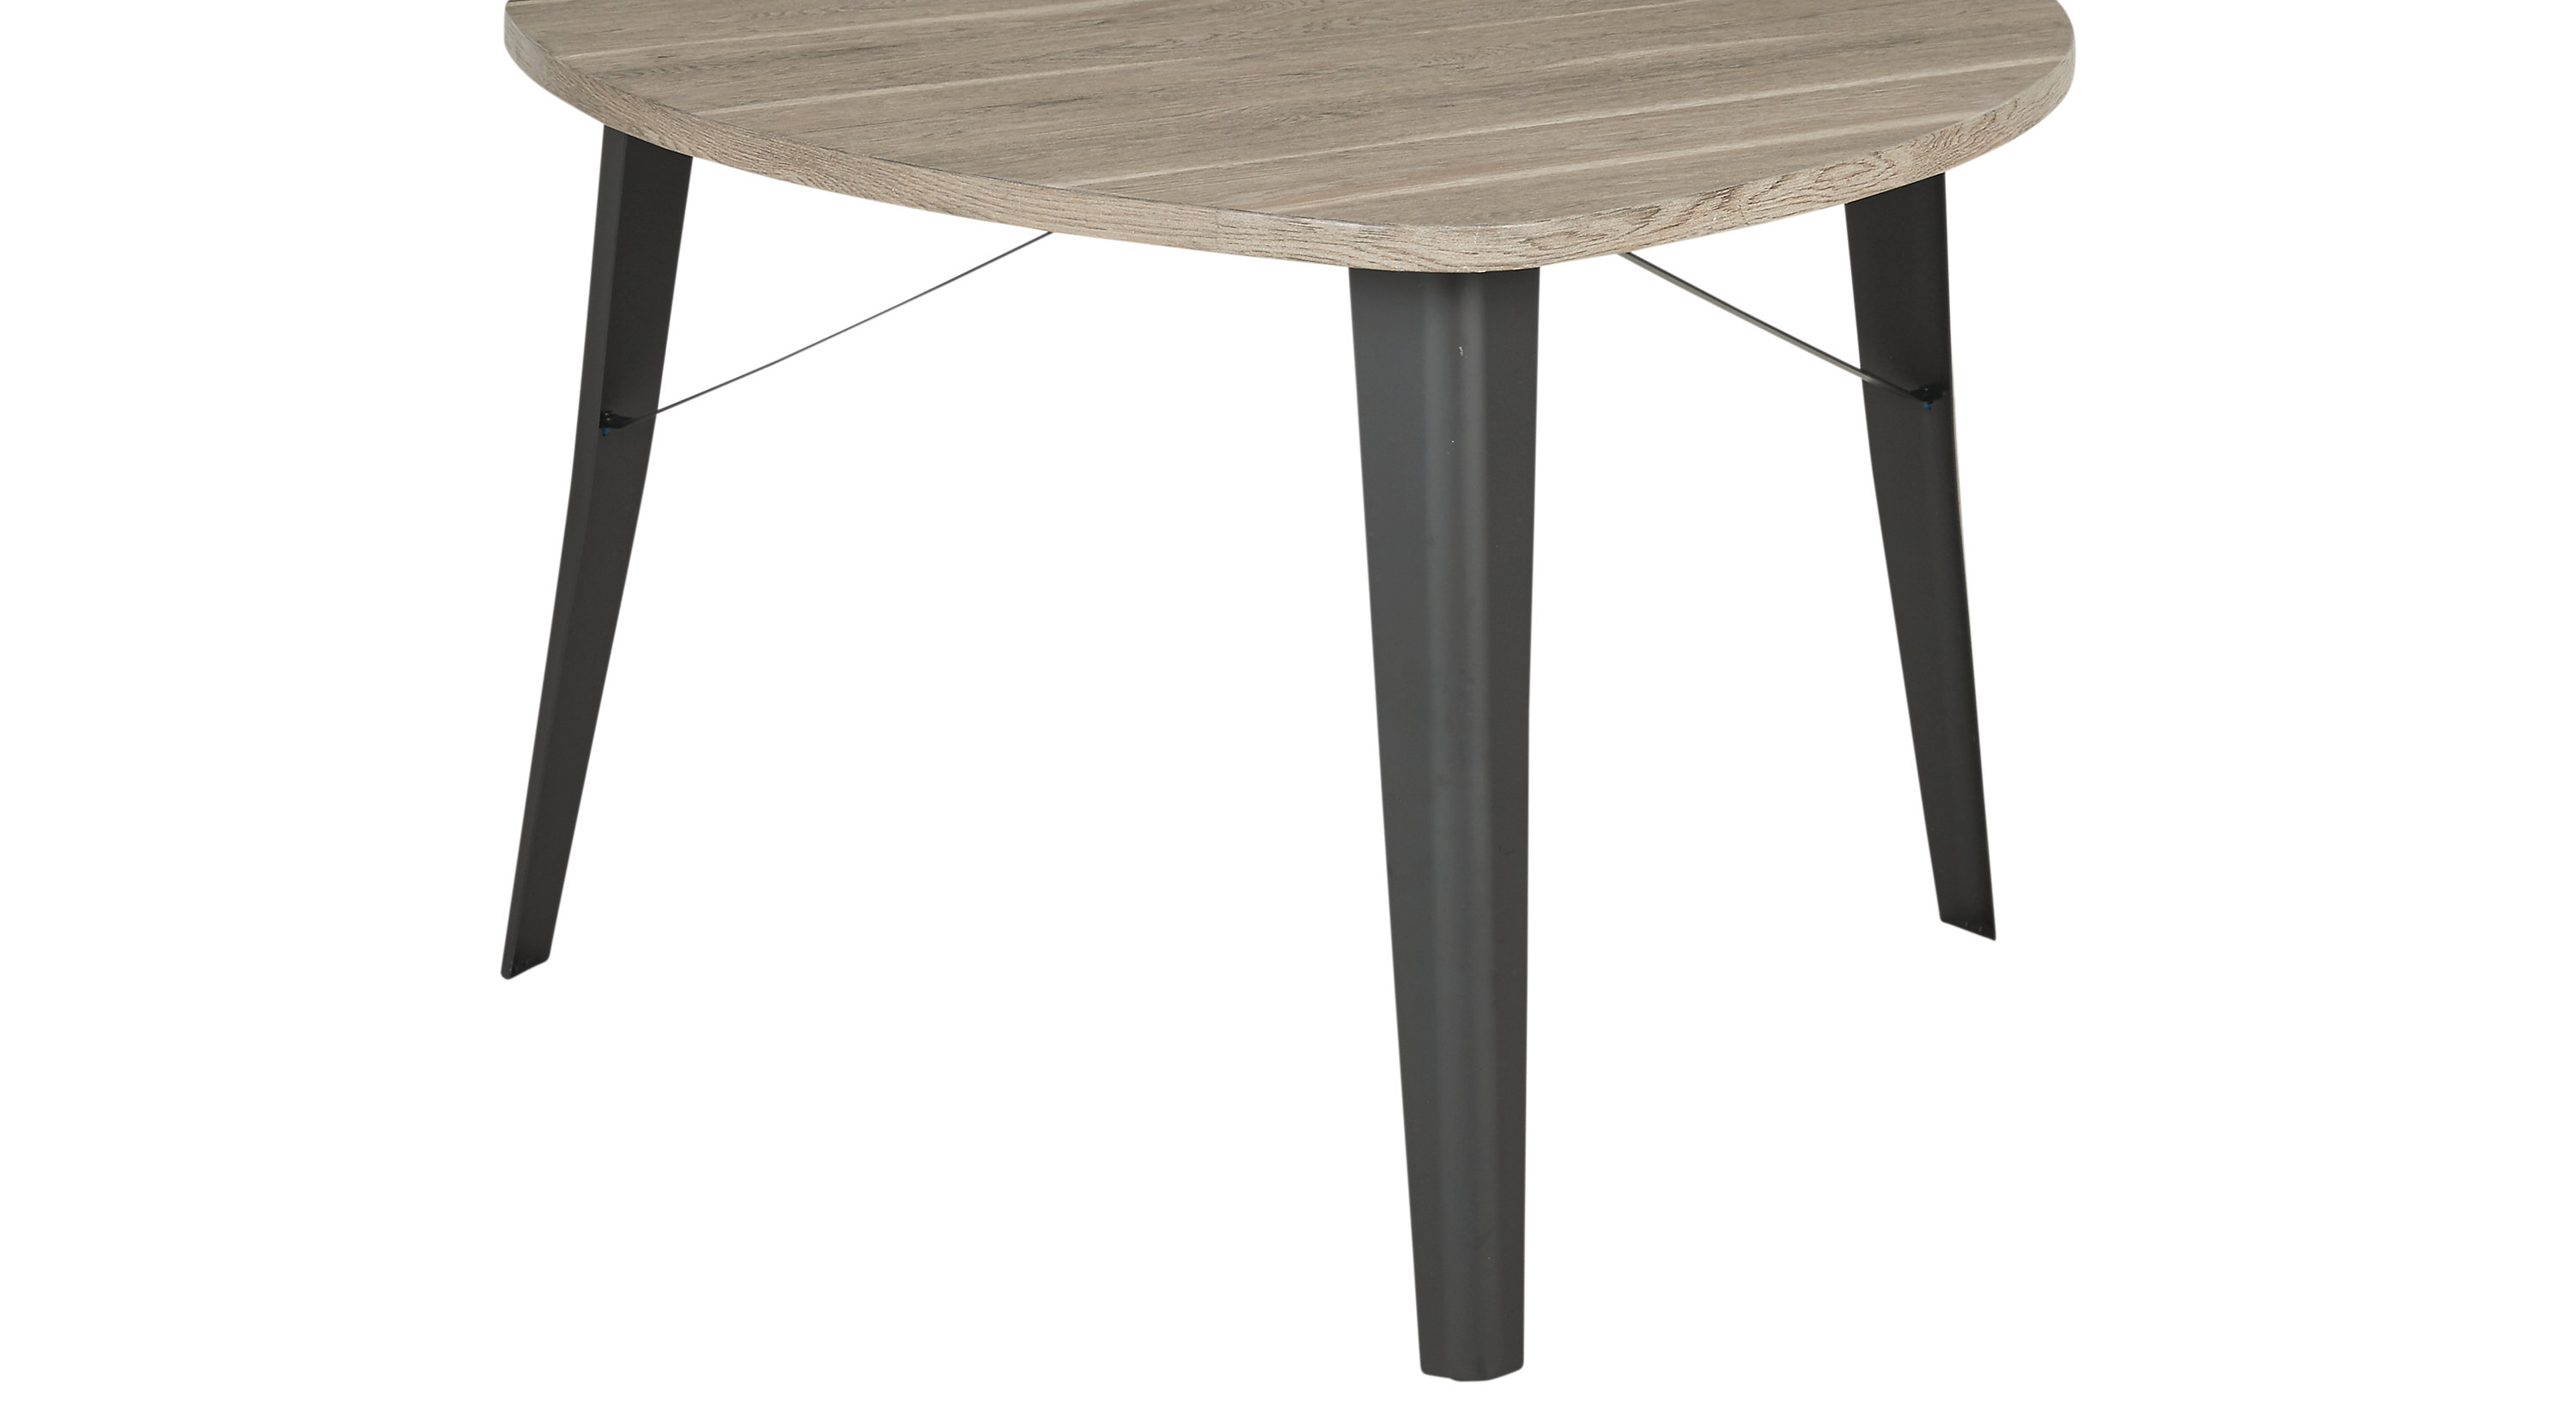 Evander Gray Triangle Dining Table Casual